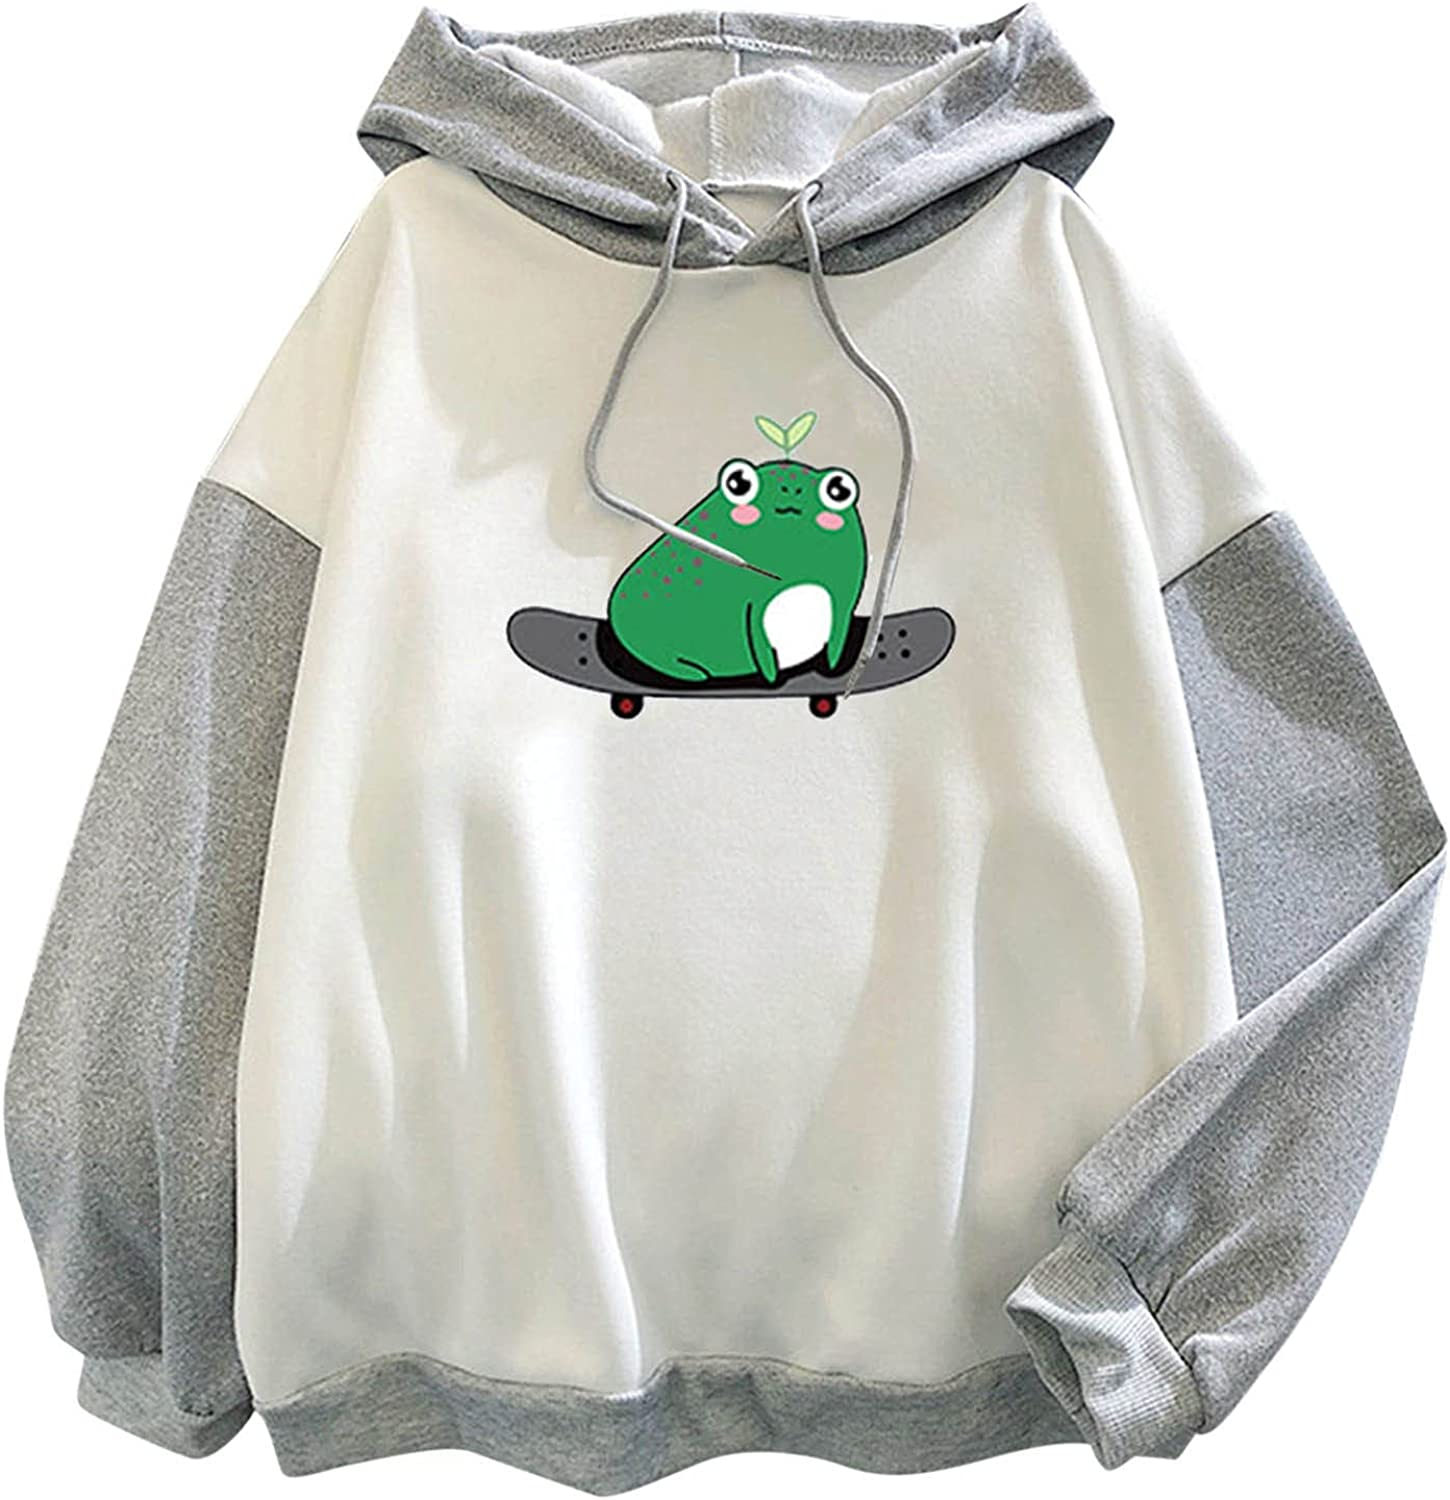 Kanzd Sweatshirts for Girls Women Cute Frog Hoodie Long Sleeve Casual Color Block Patchwork Loose fit Top Blouse Pullover